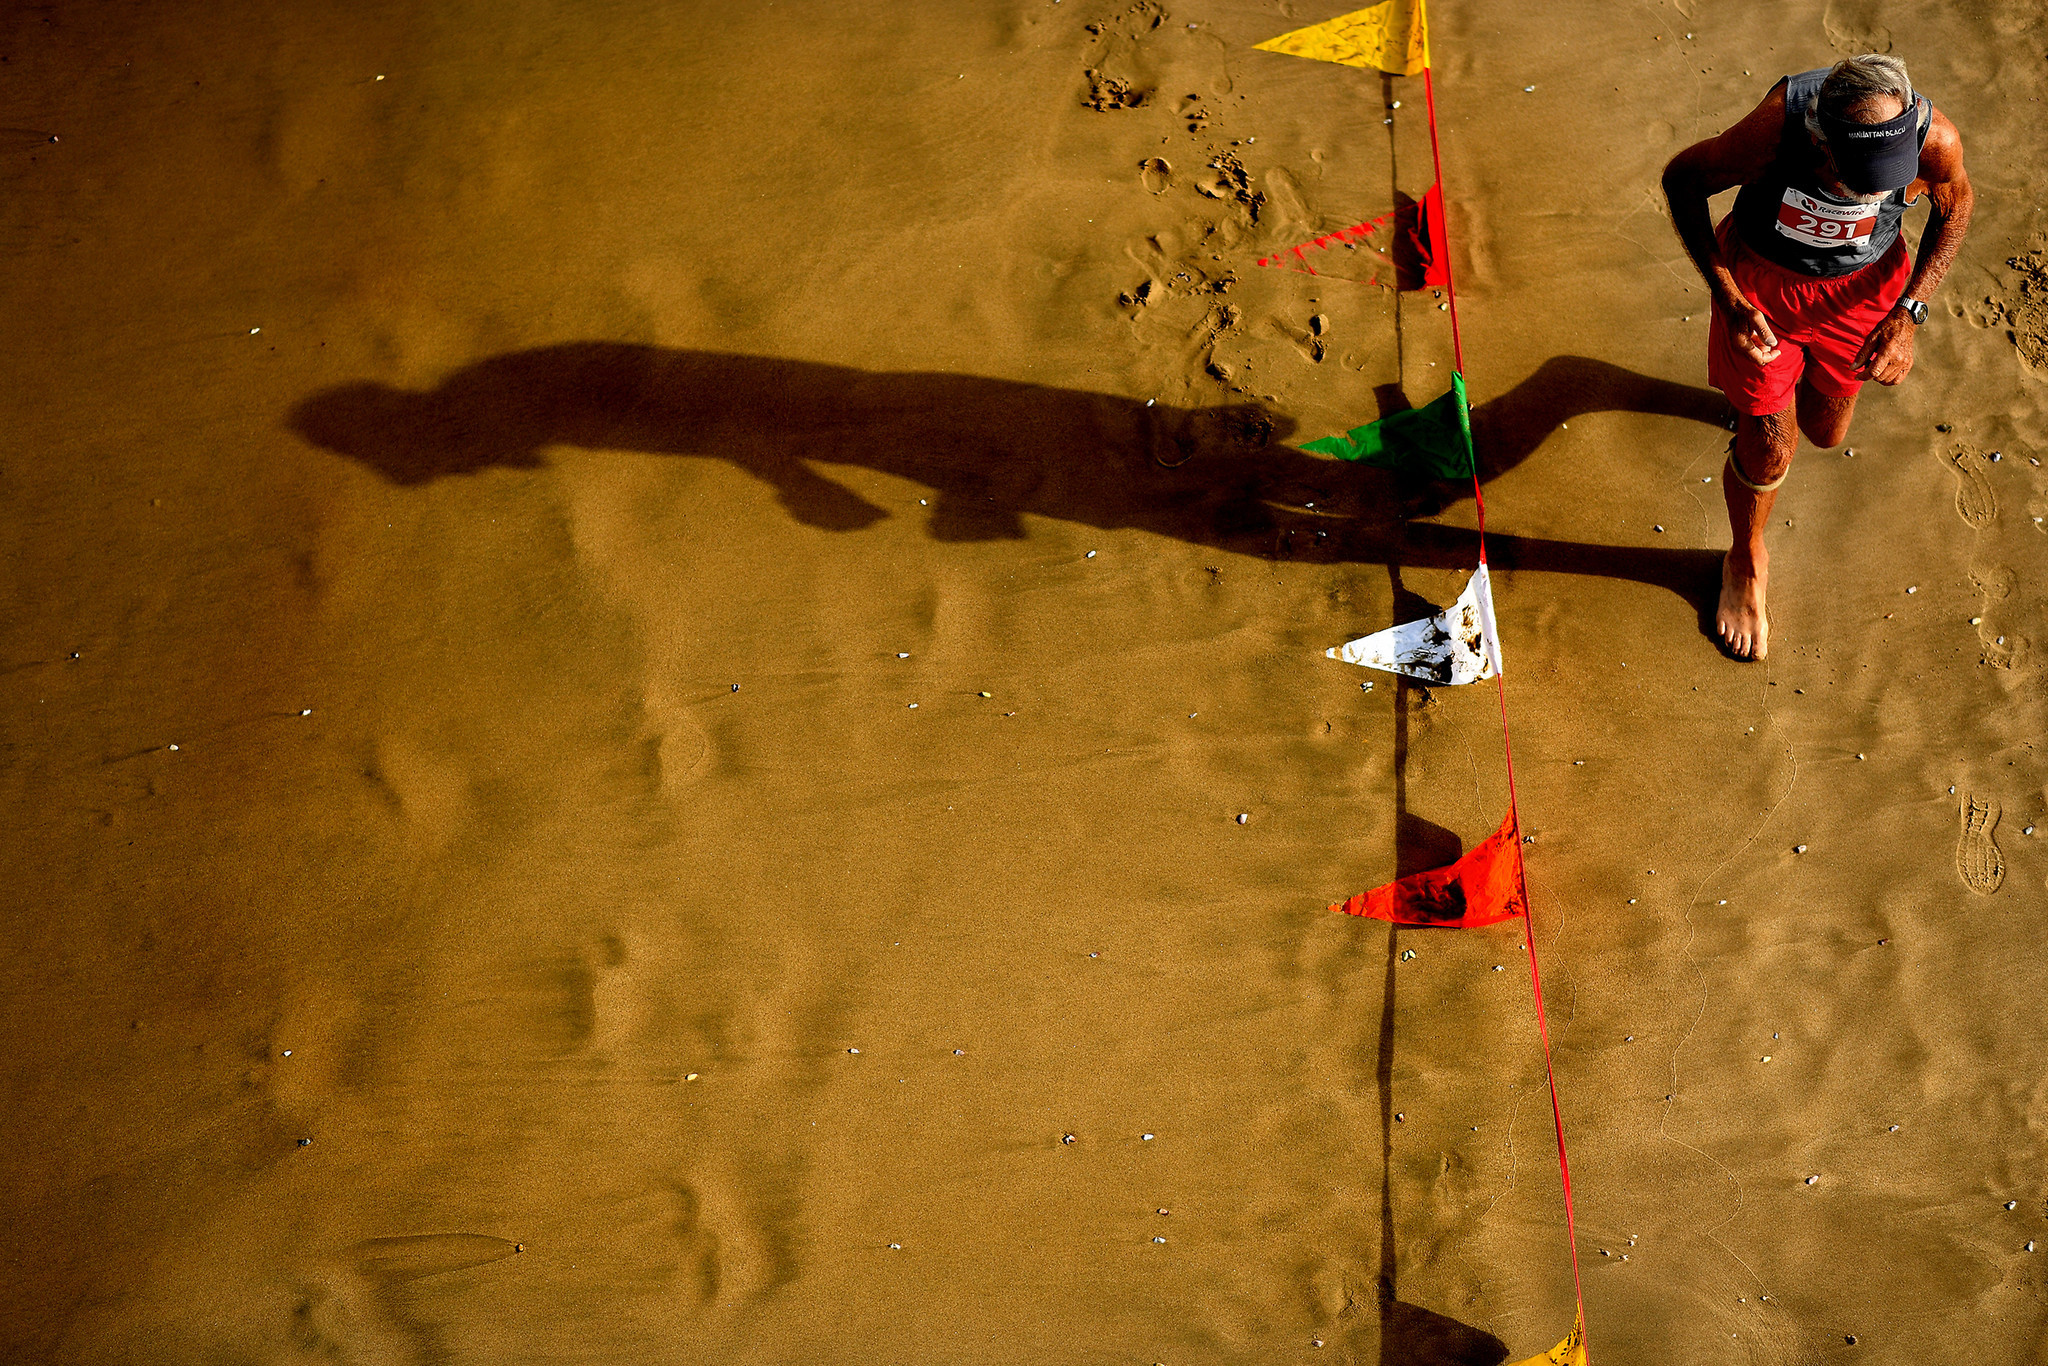 HERMOSA BEACH, CALIFORNIA AUGUST 4, 2018-A runner competes in the Dick Fitzgerald beach run during t